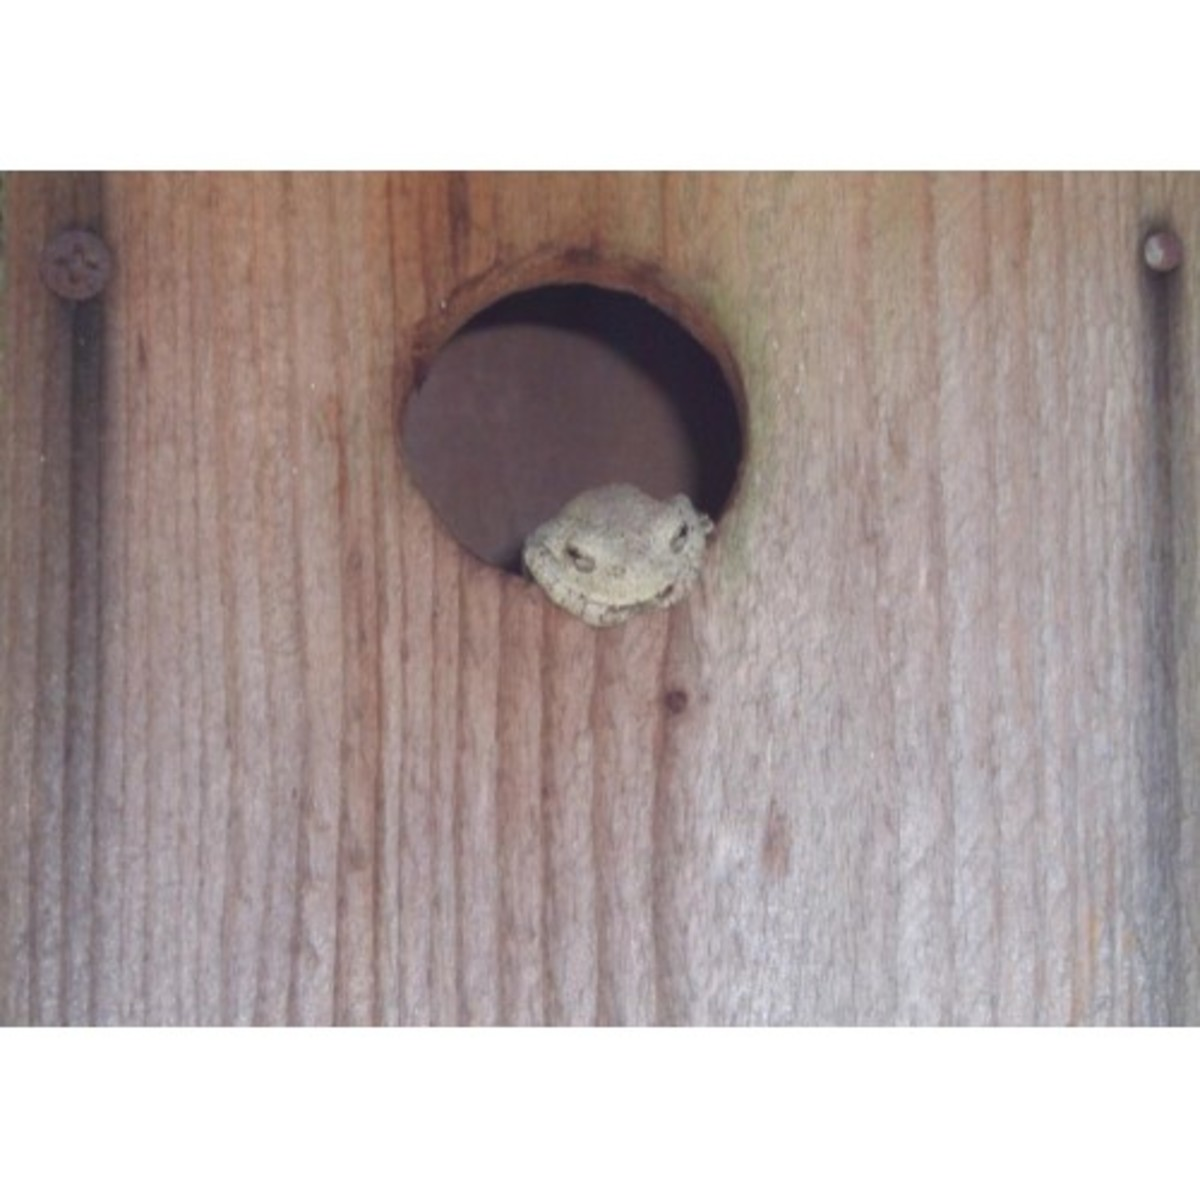 A Gray Tree frog lived in this bird house for 2 years.